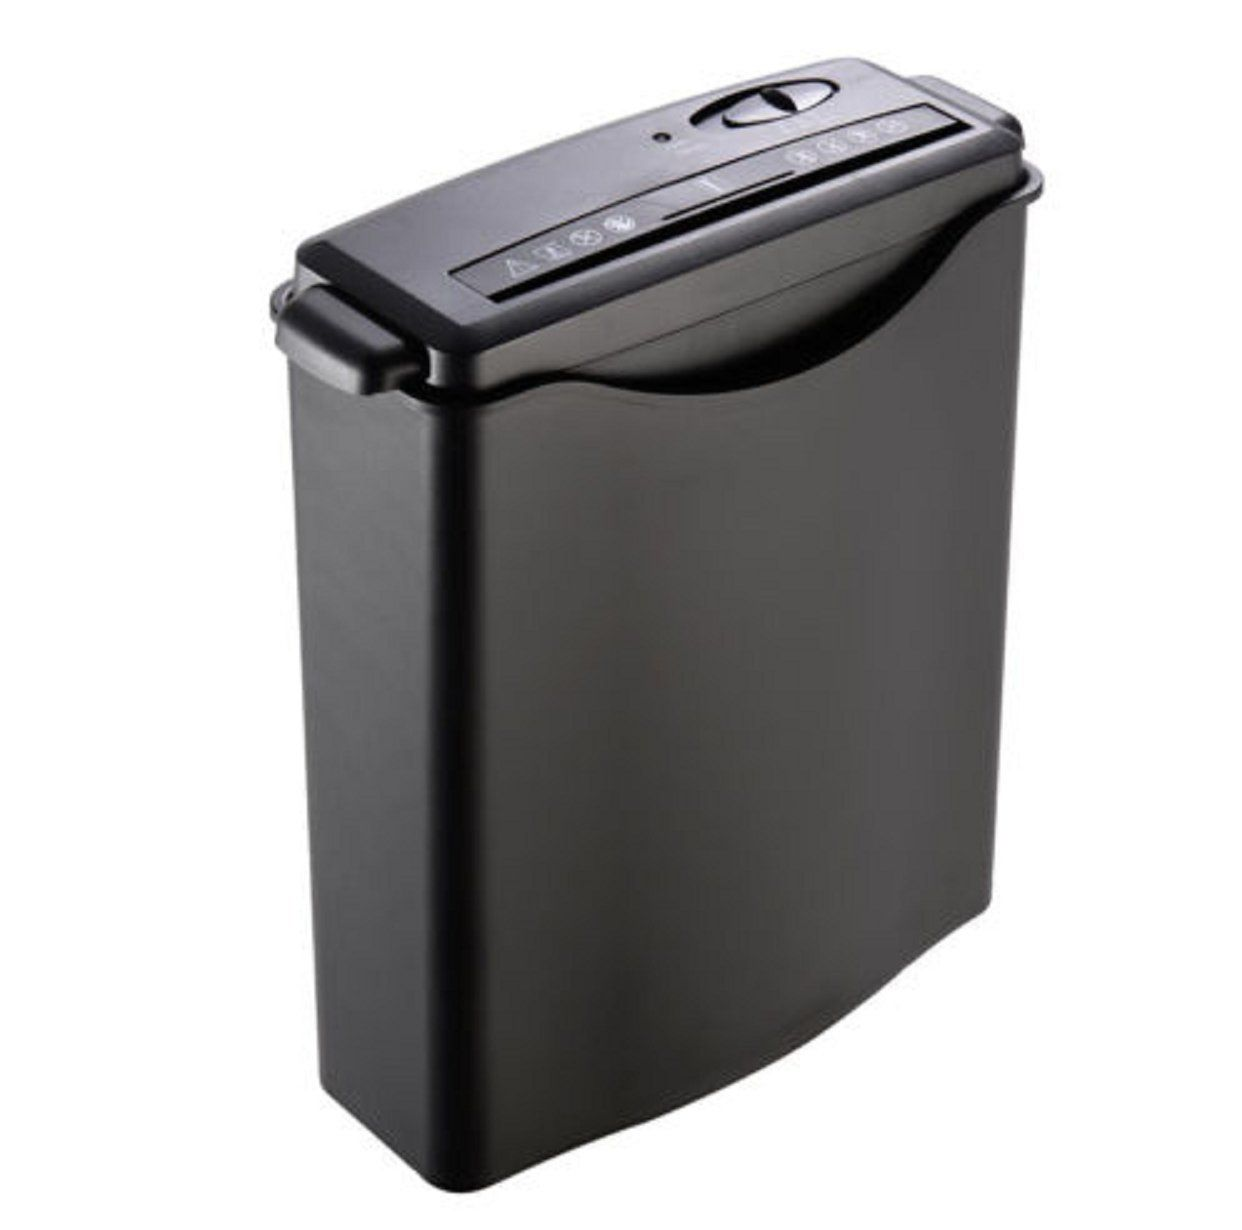 Ghp Black Solid Fireproof Abs Construction Home Office Paper Shredder W Basket